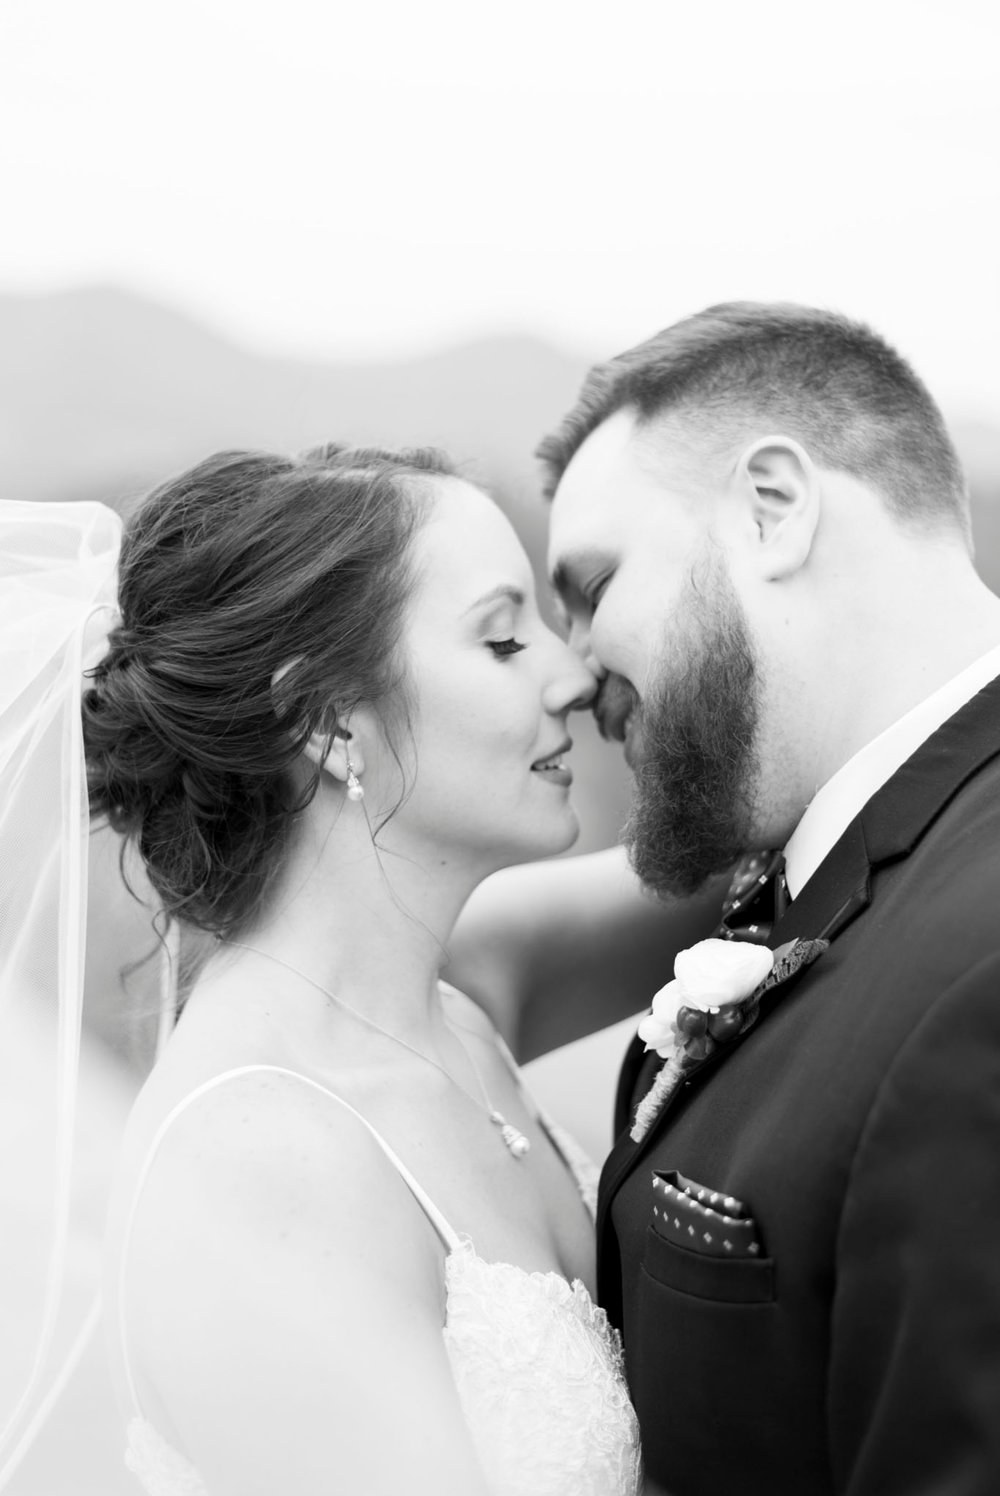 IrvineEstate_LexingtonVA_Wedding_FallWedding_VirginiaWeddingPhotographer 95.jpg